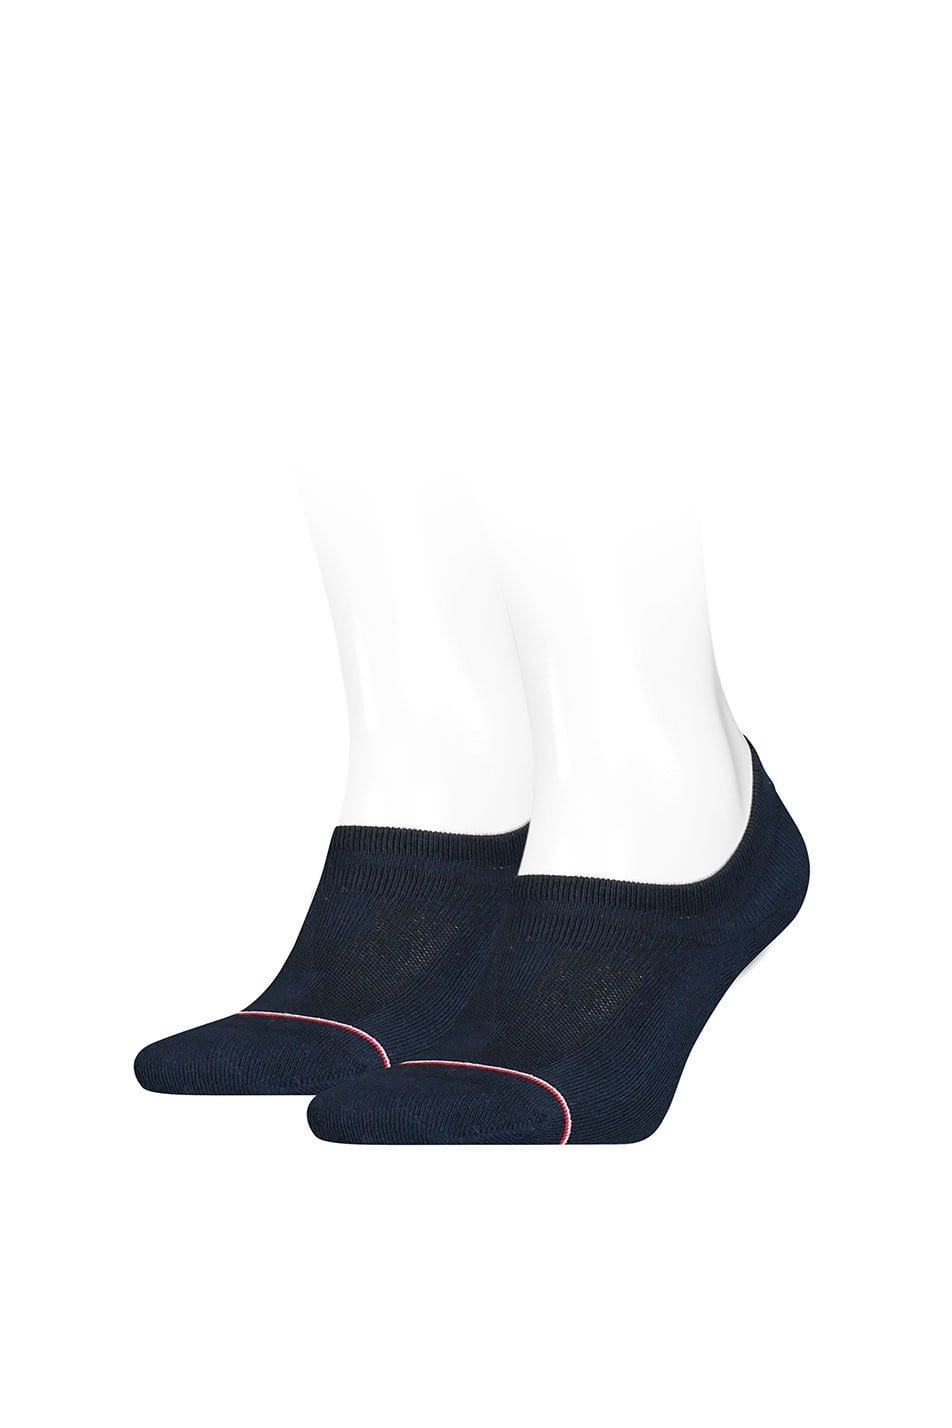 Tommy Hilfiger 2 Pack Iconic Footie Socks